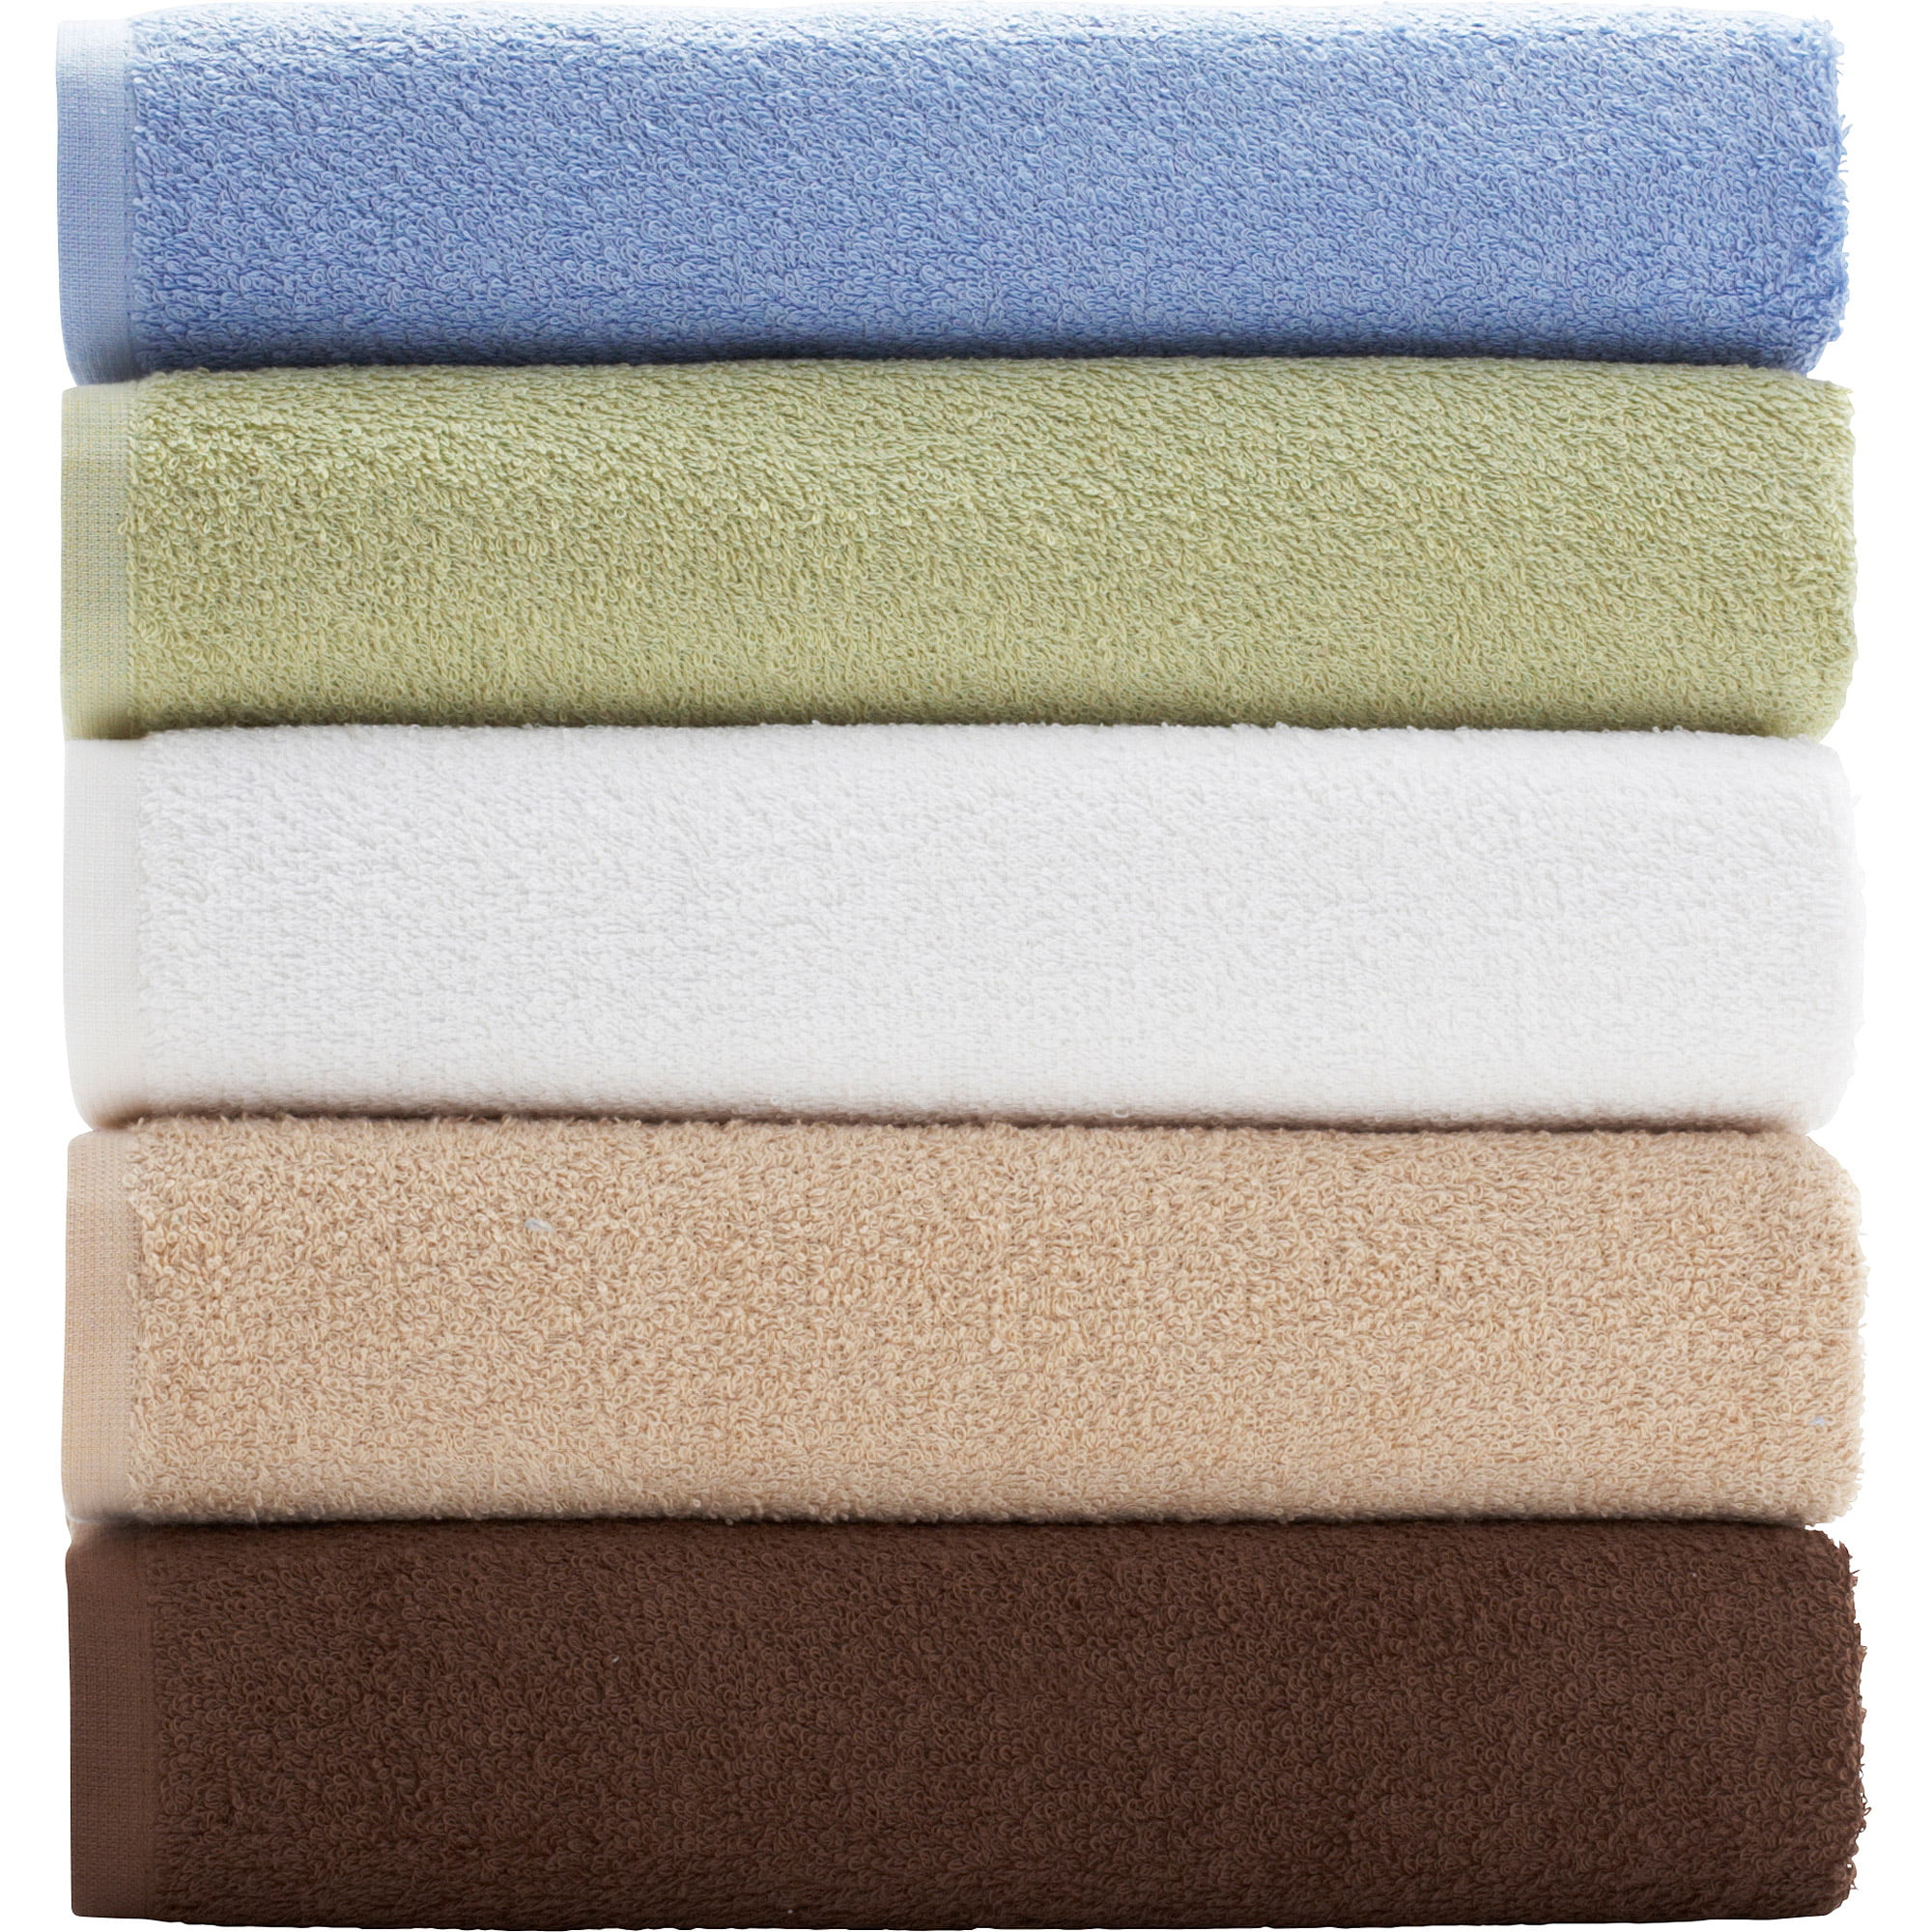 mainstays value bath towel collection - walmart